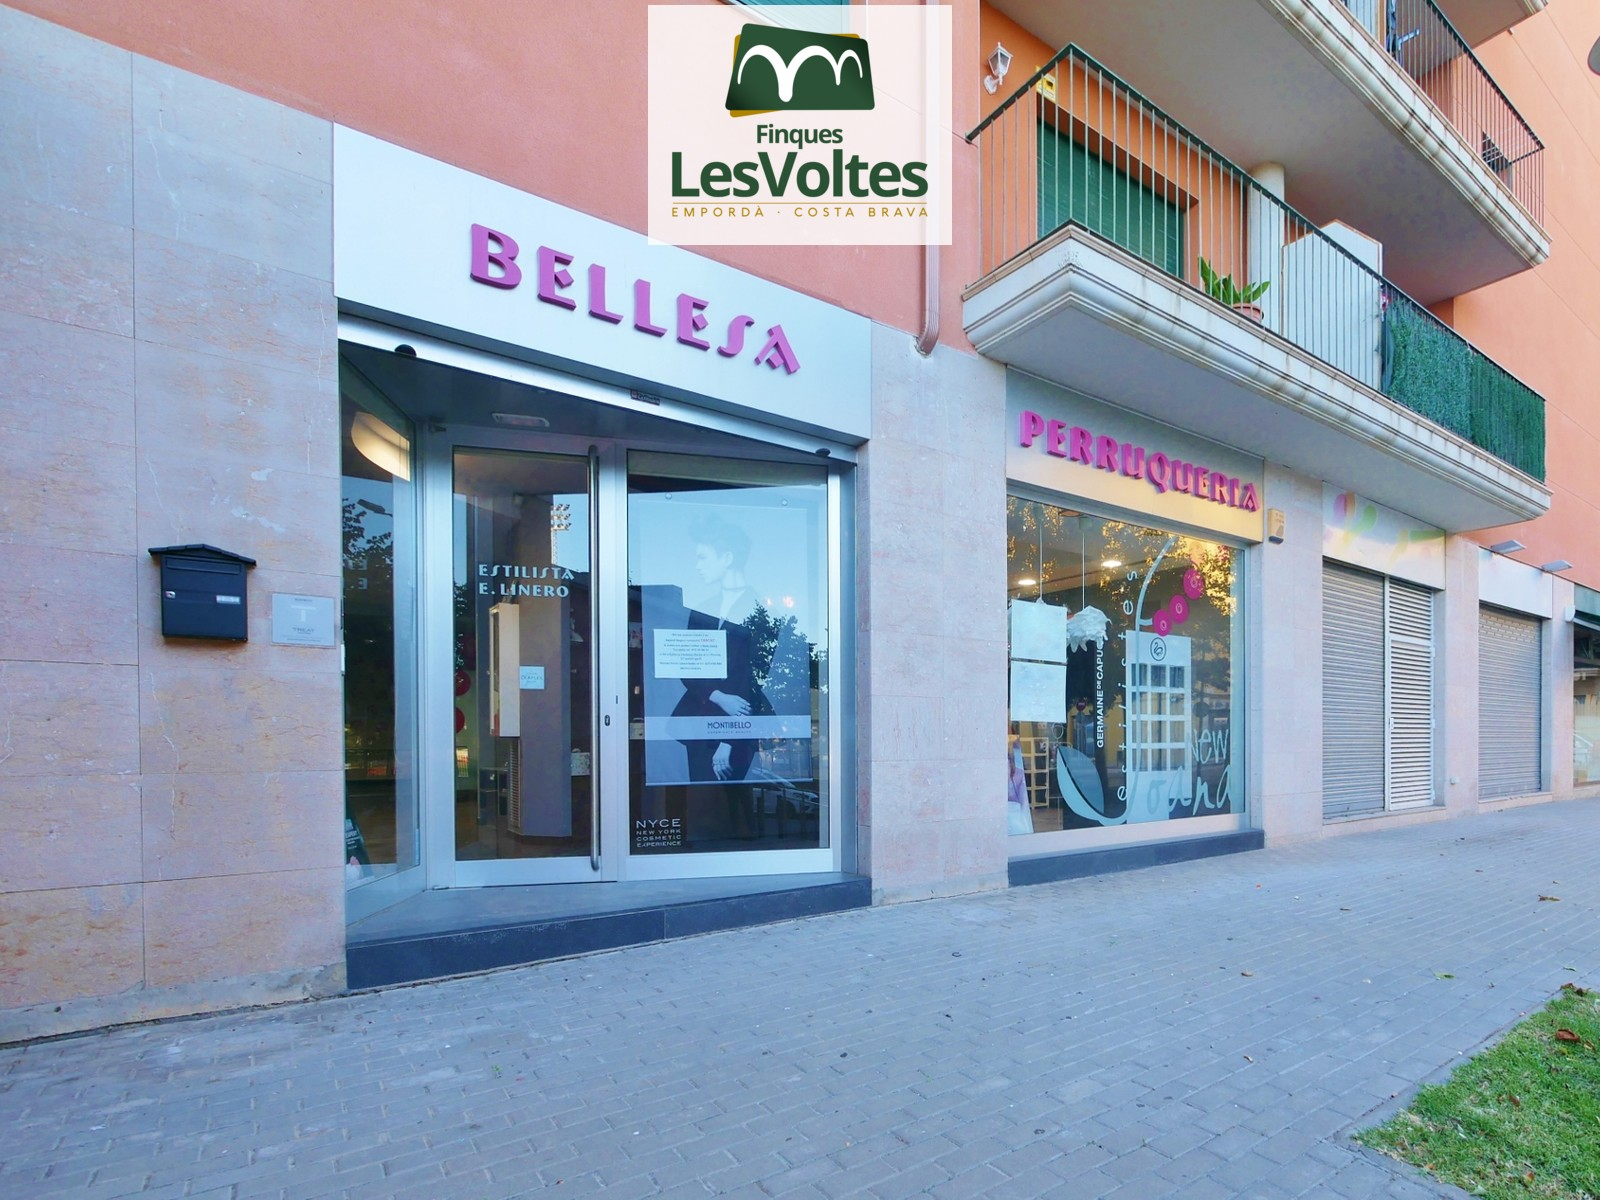 MAGNIFICENT COMMERCIAL LOCAL WITH HAIRDRESSING AND AESTHETICS BUSINESS FOR SALE IN PALAFRUGELL. IMPECCABLE REFORM.